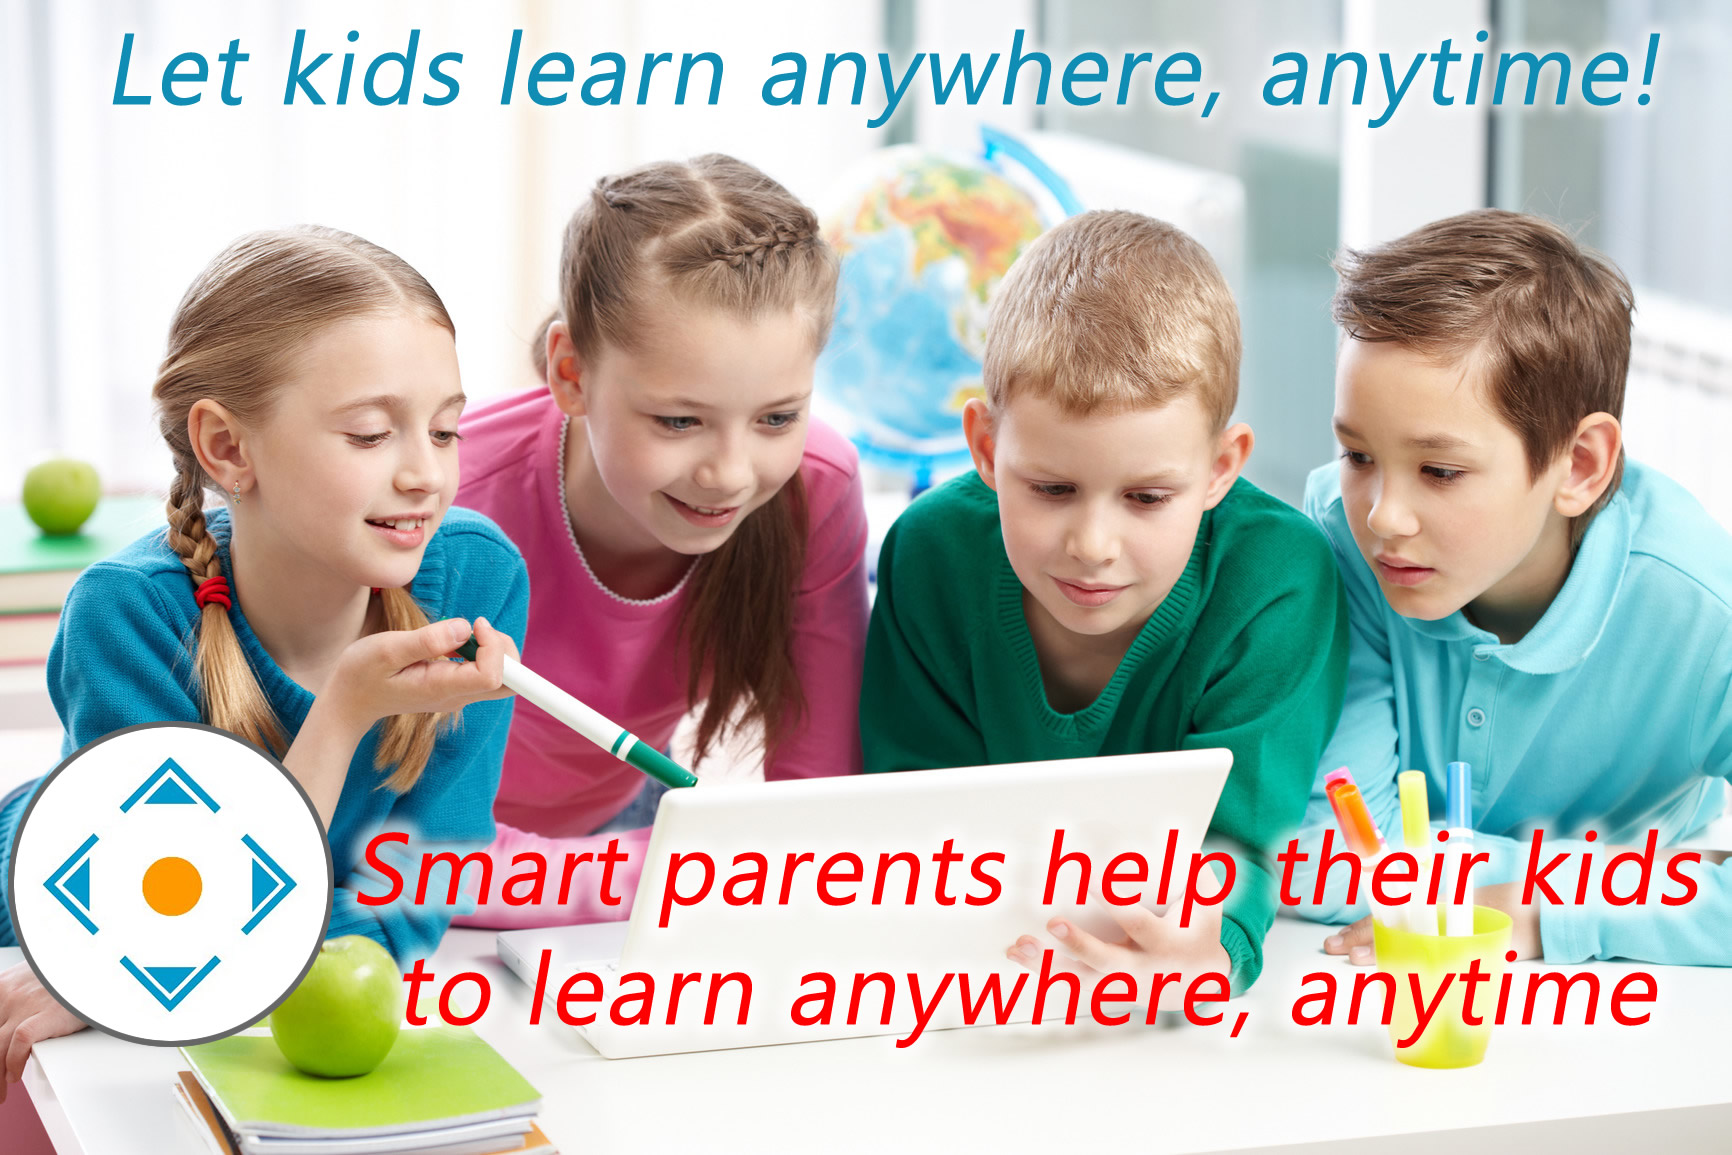 Alveol Academy - Smart Parents help kids to learn anywhere anytime